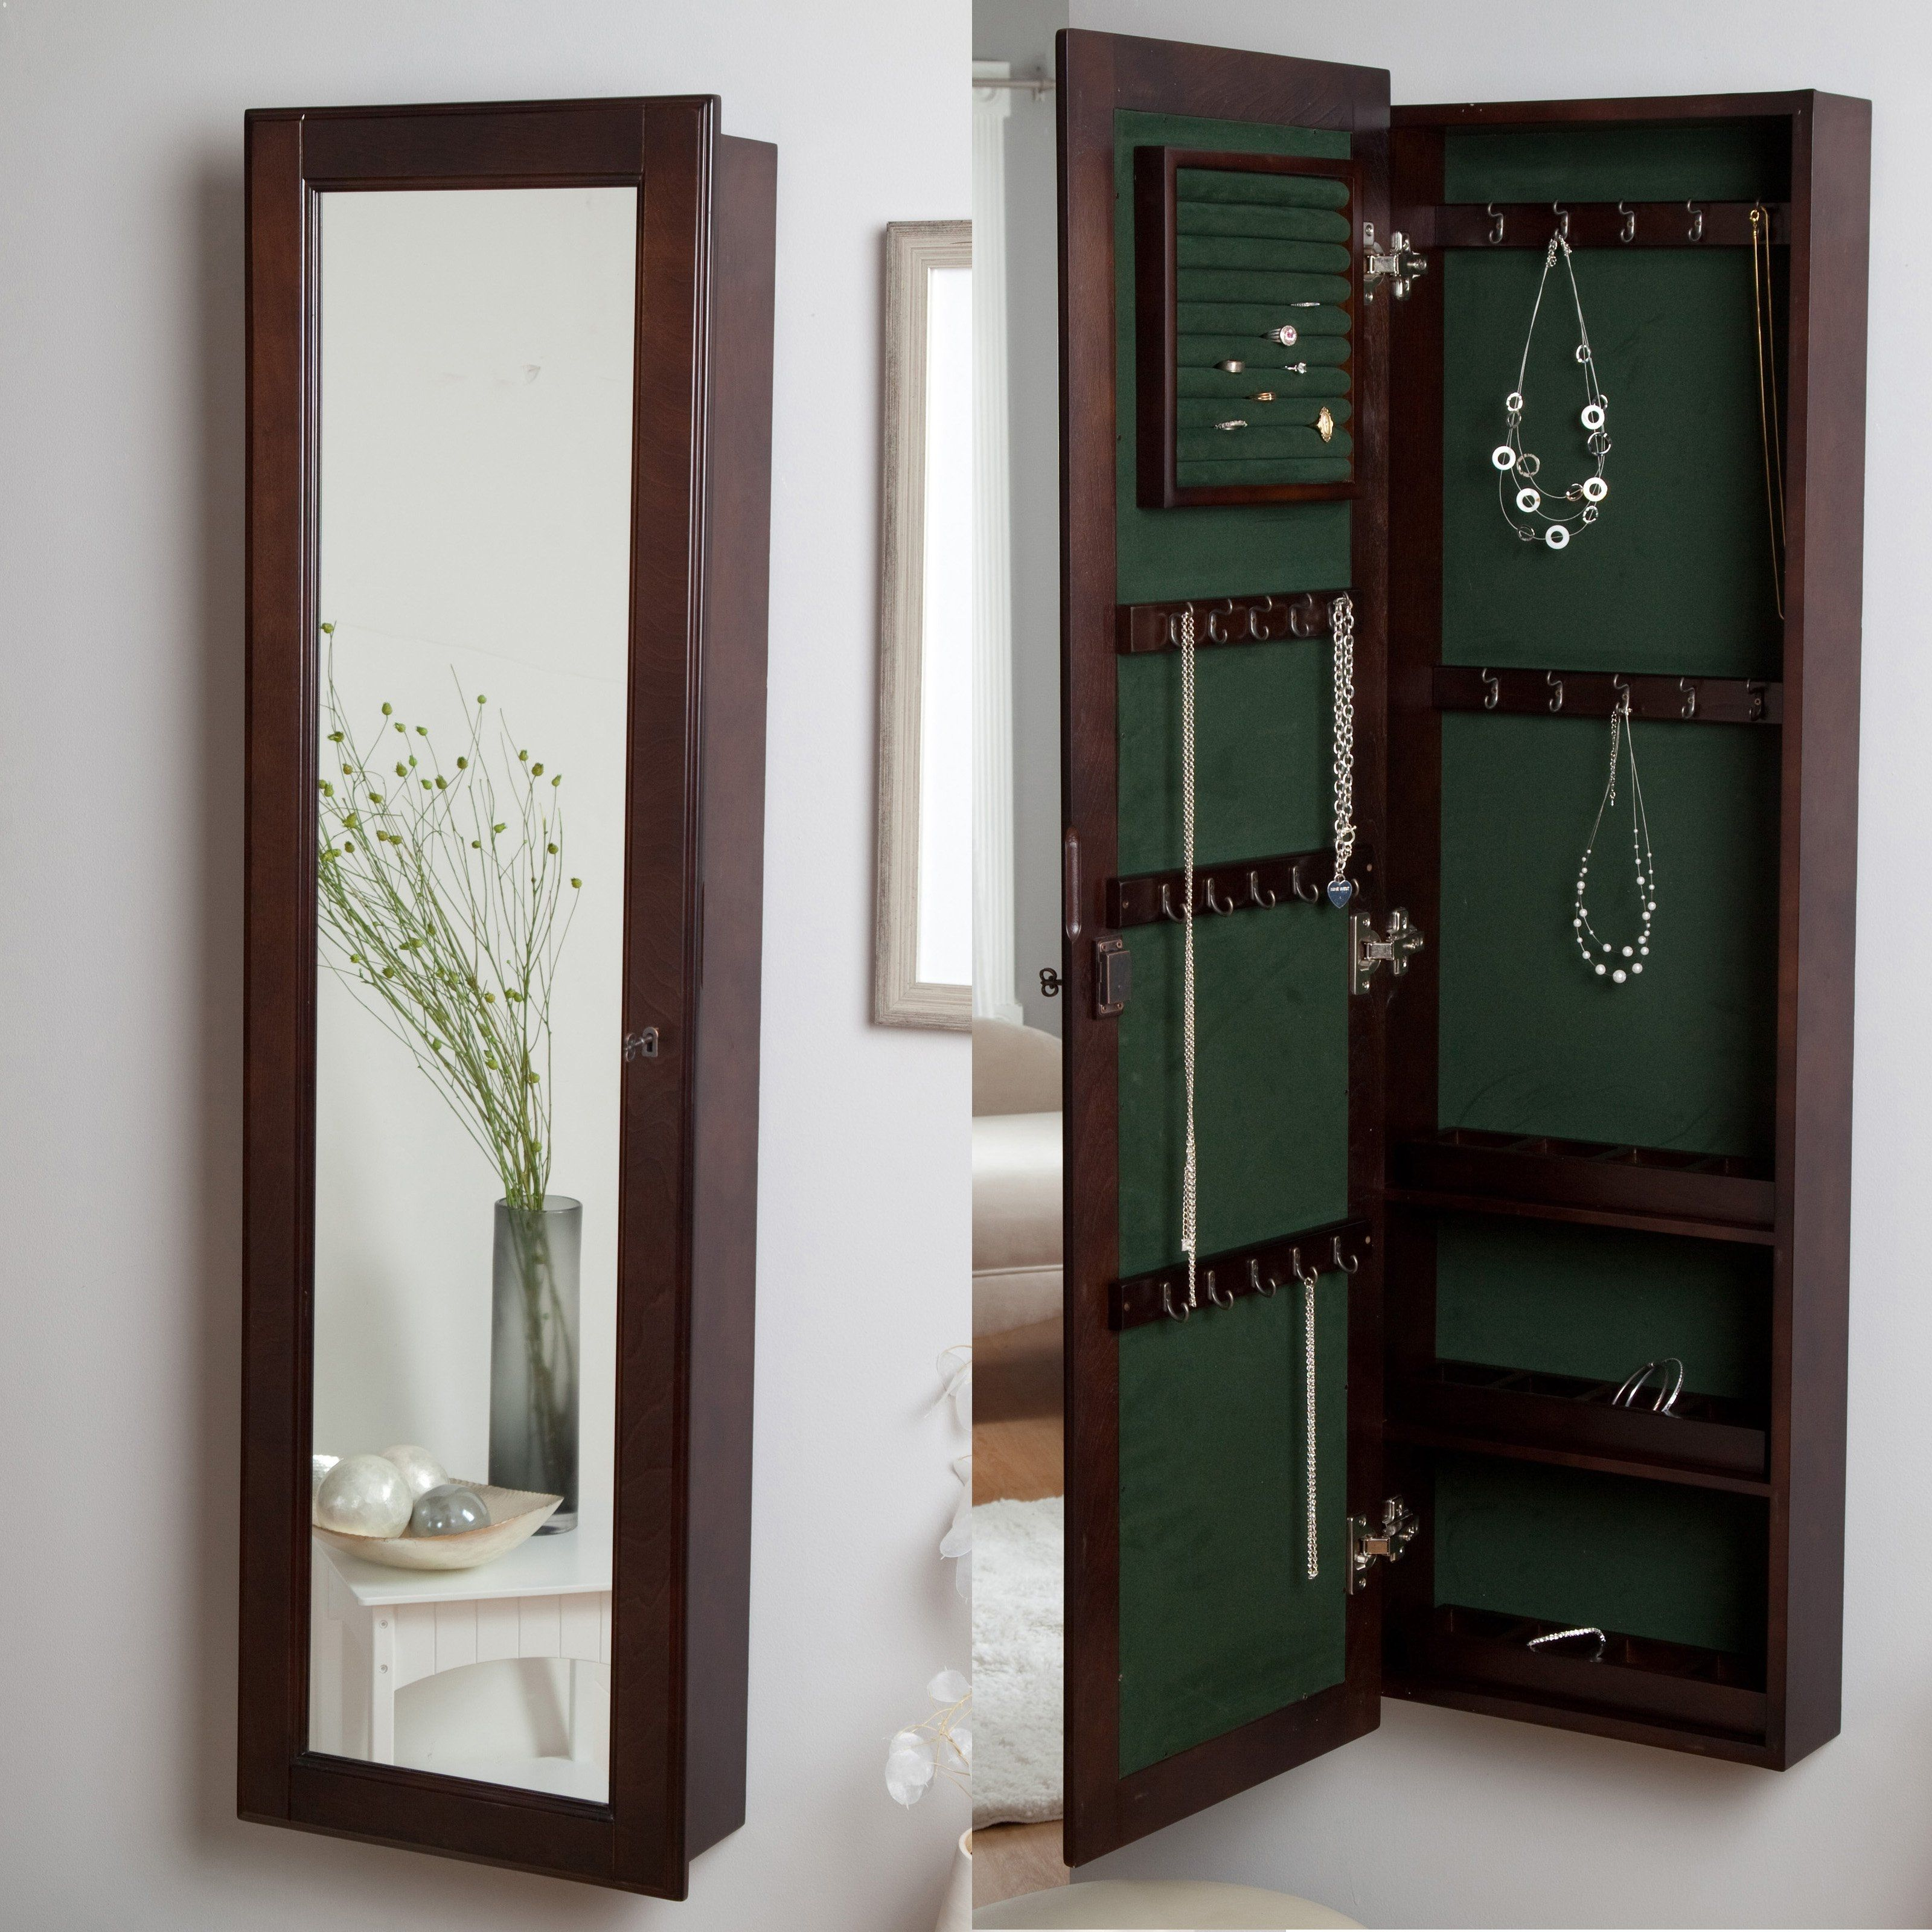 Hang Mirror On Plasterboard Wall   Jewelry armoire, Wall ...